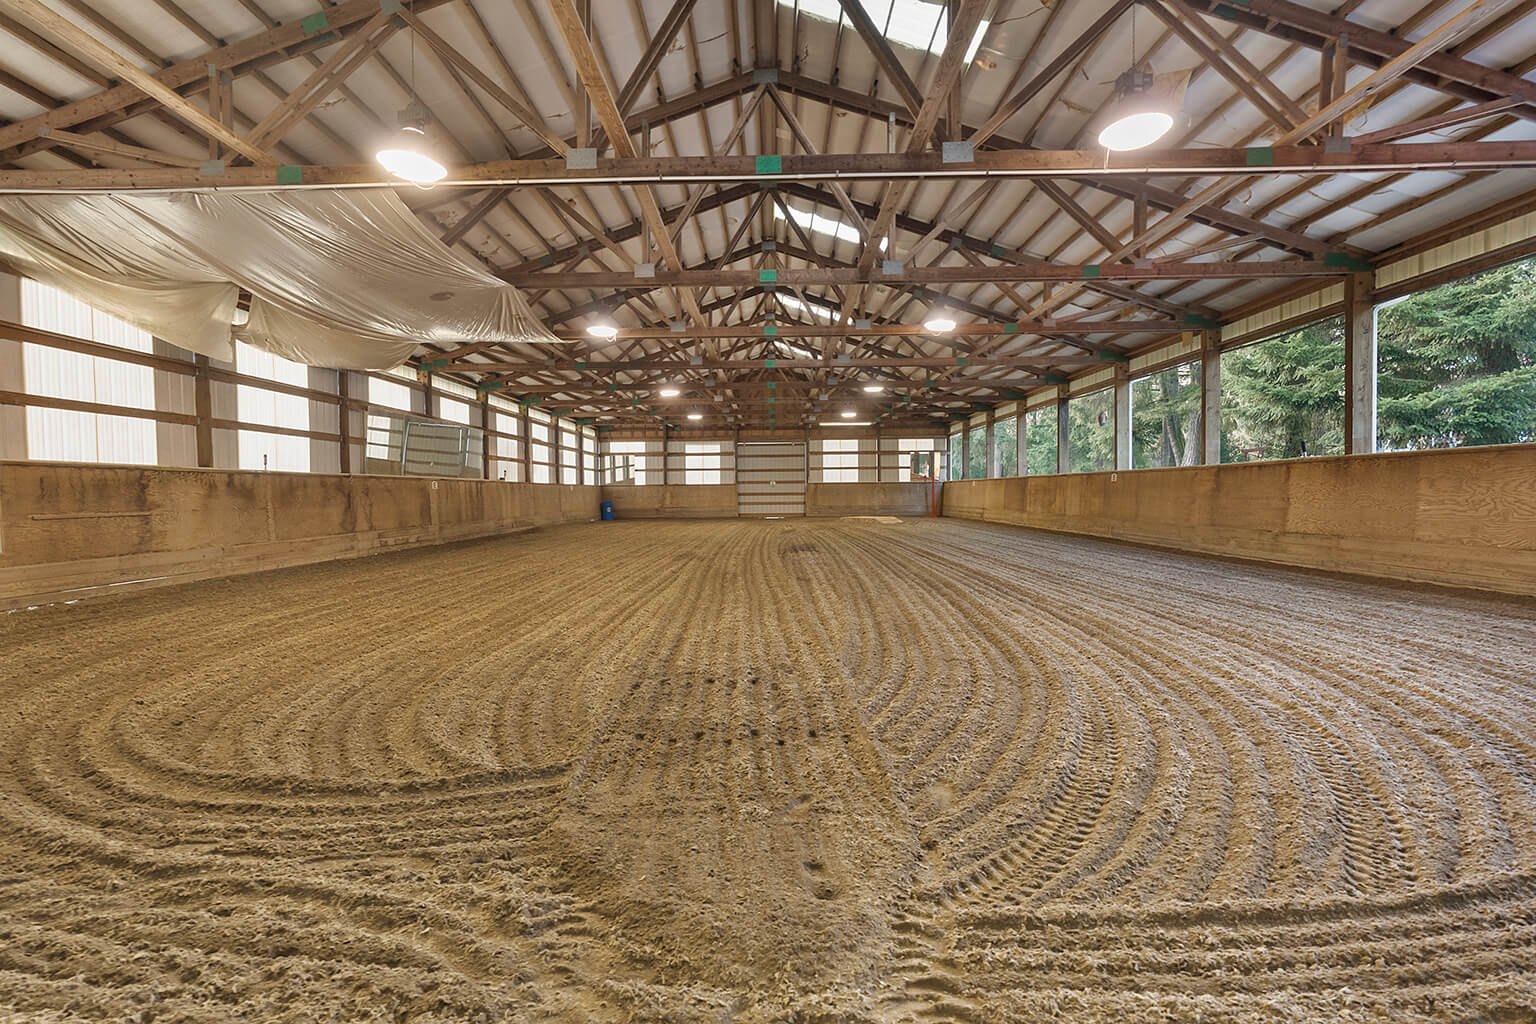 60' x 120' covered arena